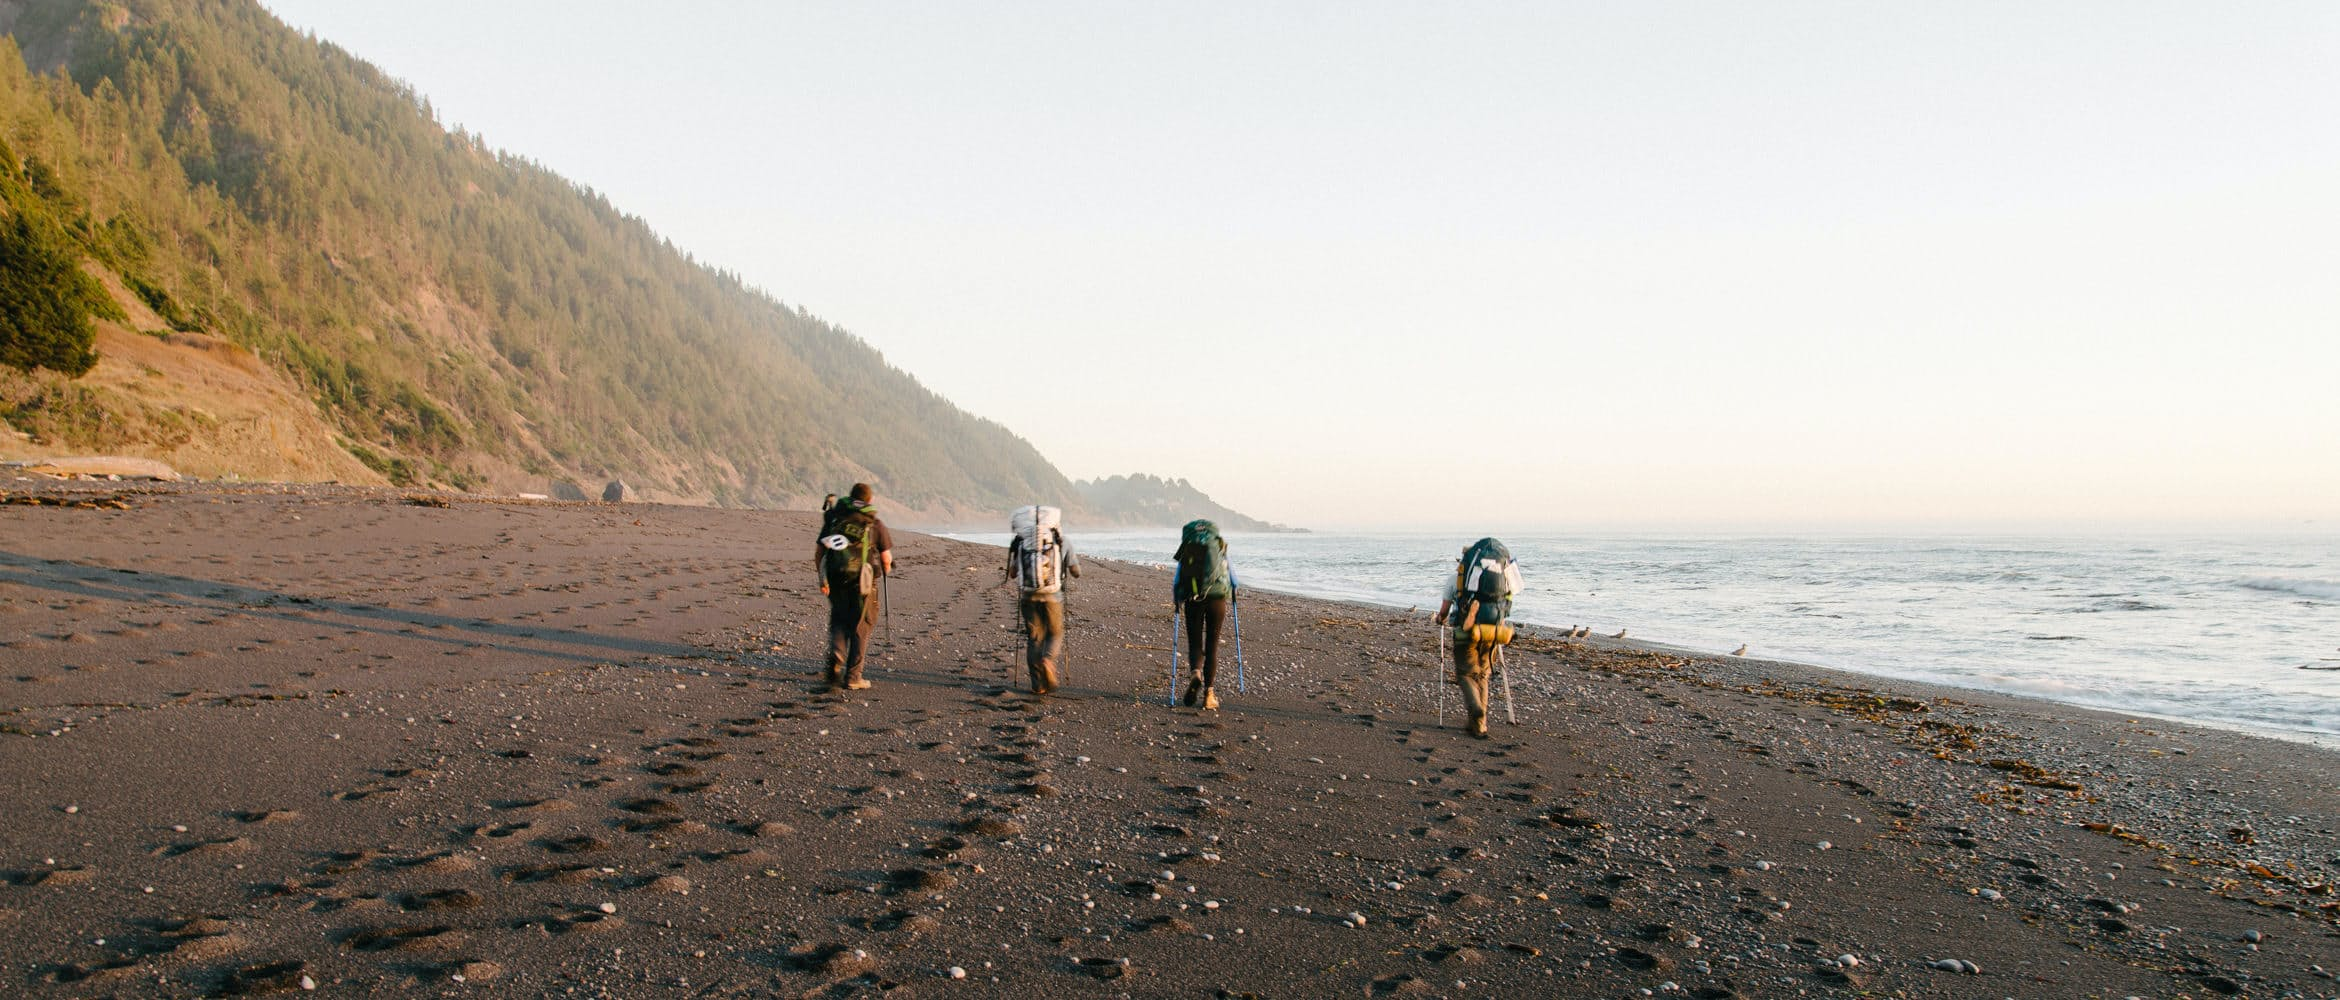 Featured 2x huckberry lost coast trail alyx schwarz header.jpg?ixlib=rails 2.1